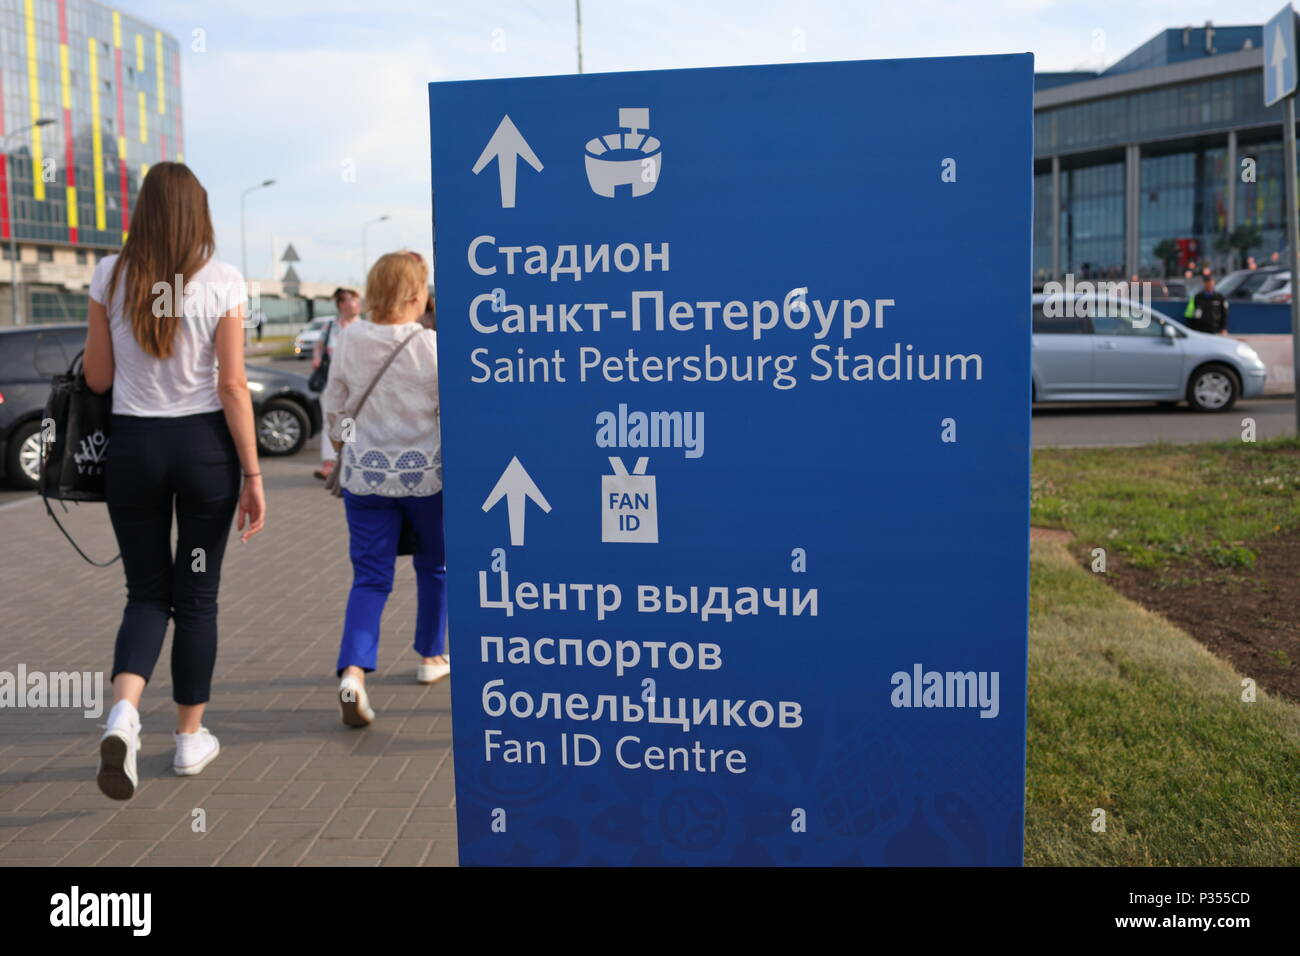 St. Petersburg, Russia - June 16, 2018: People at the sign pointing direction to Saint Petersburg Stadium and Fan ID Center during FIFA World Cup Russ - Stock Image